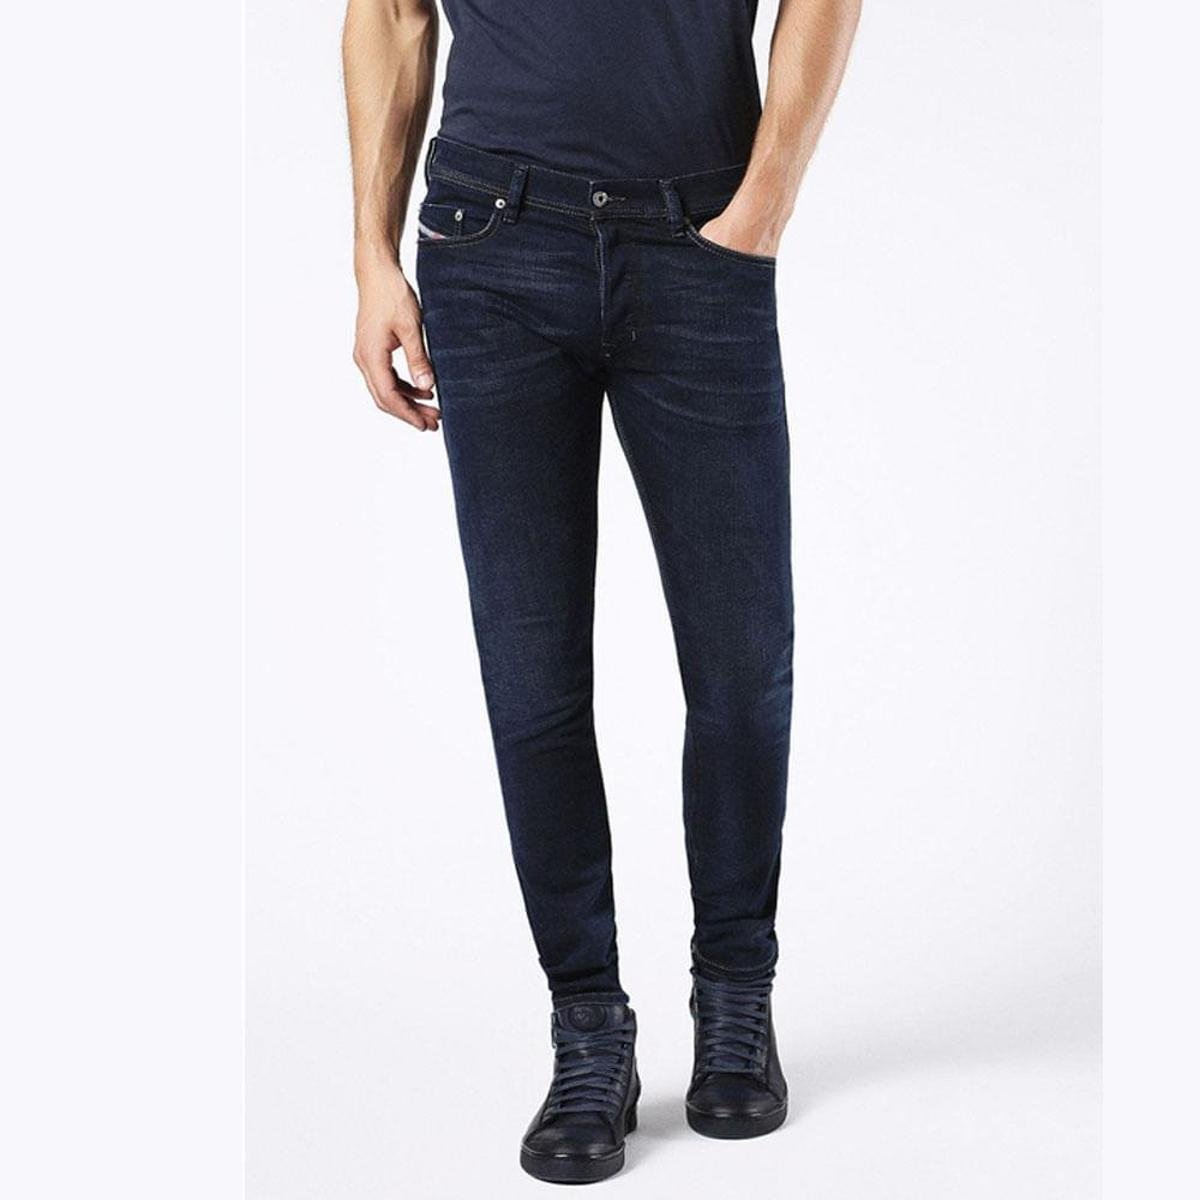 2f534a0cd Calça Jeans Diesel Tepphar | Masculina | Netshoes